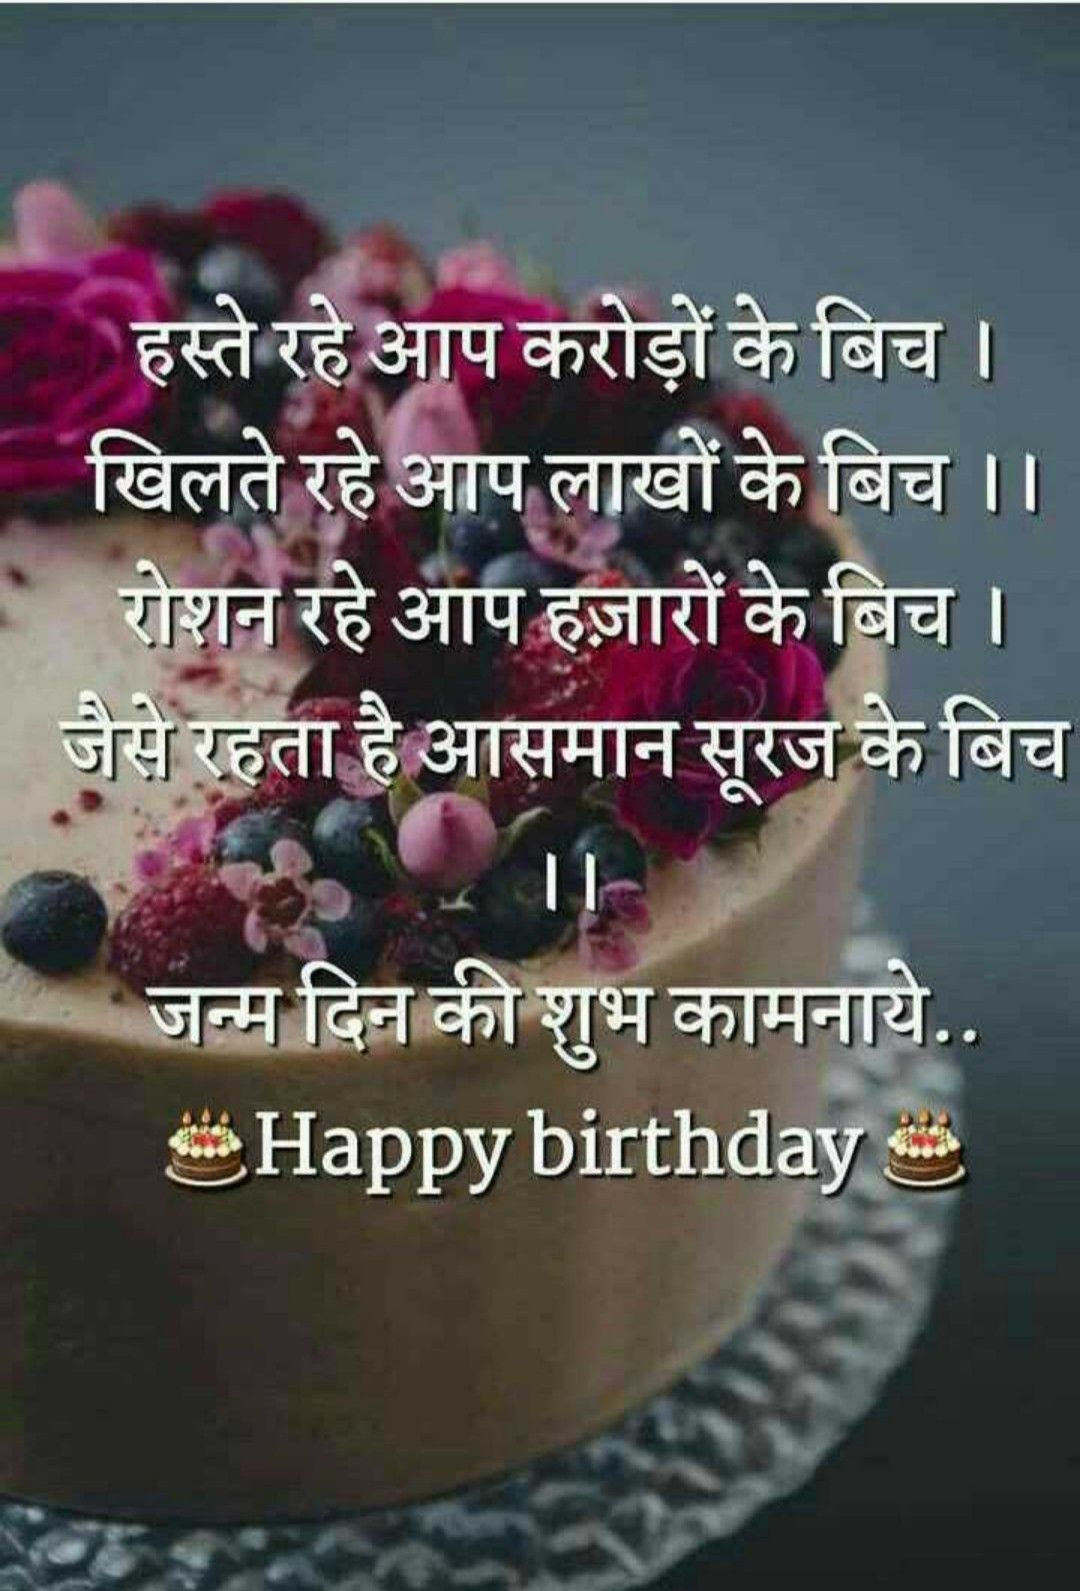 Birthday Wishes For Best Friend Girl Funny Quotes In Hindi : birthday, wishes, friend, funny, quotes, hindi, Happt, Birthday, Beautiful, Wishes,, Wishes, Friend, Messages,, Happy, Cards